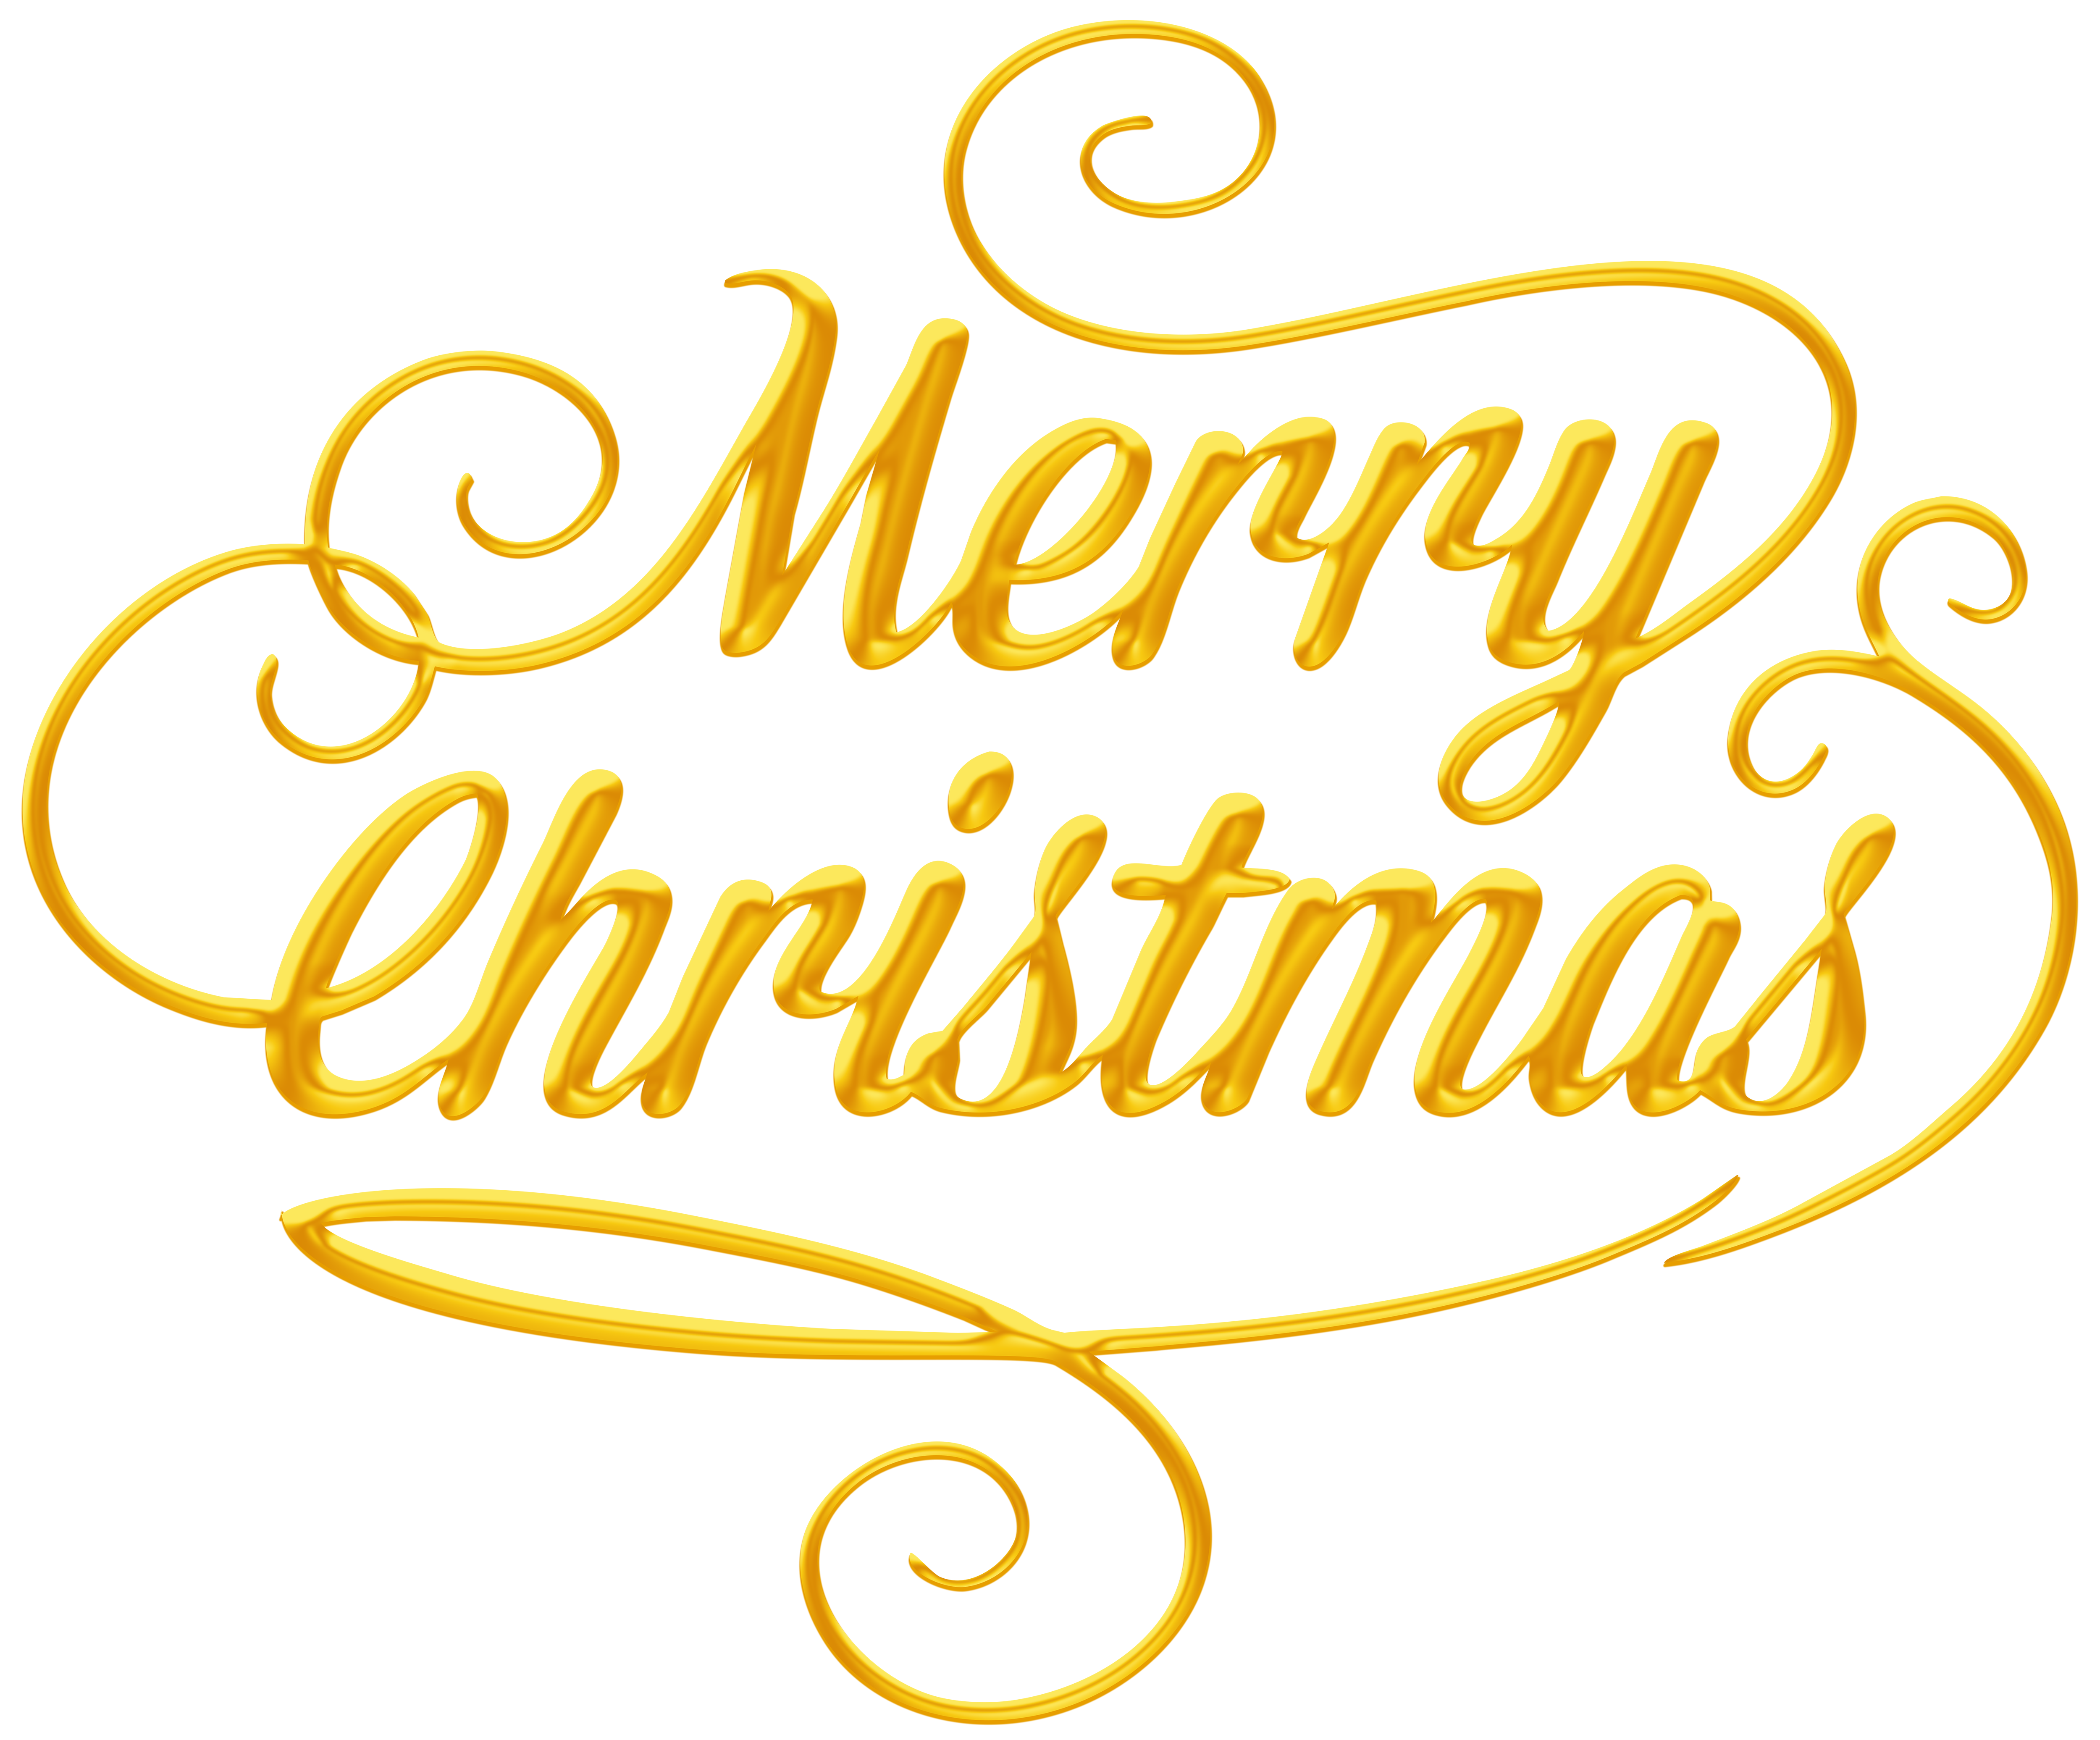 Christmas Paper New Year Clip art.